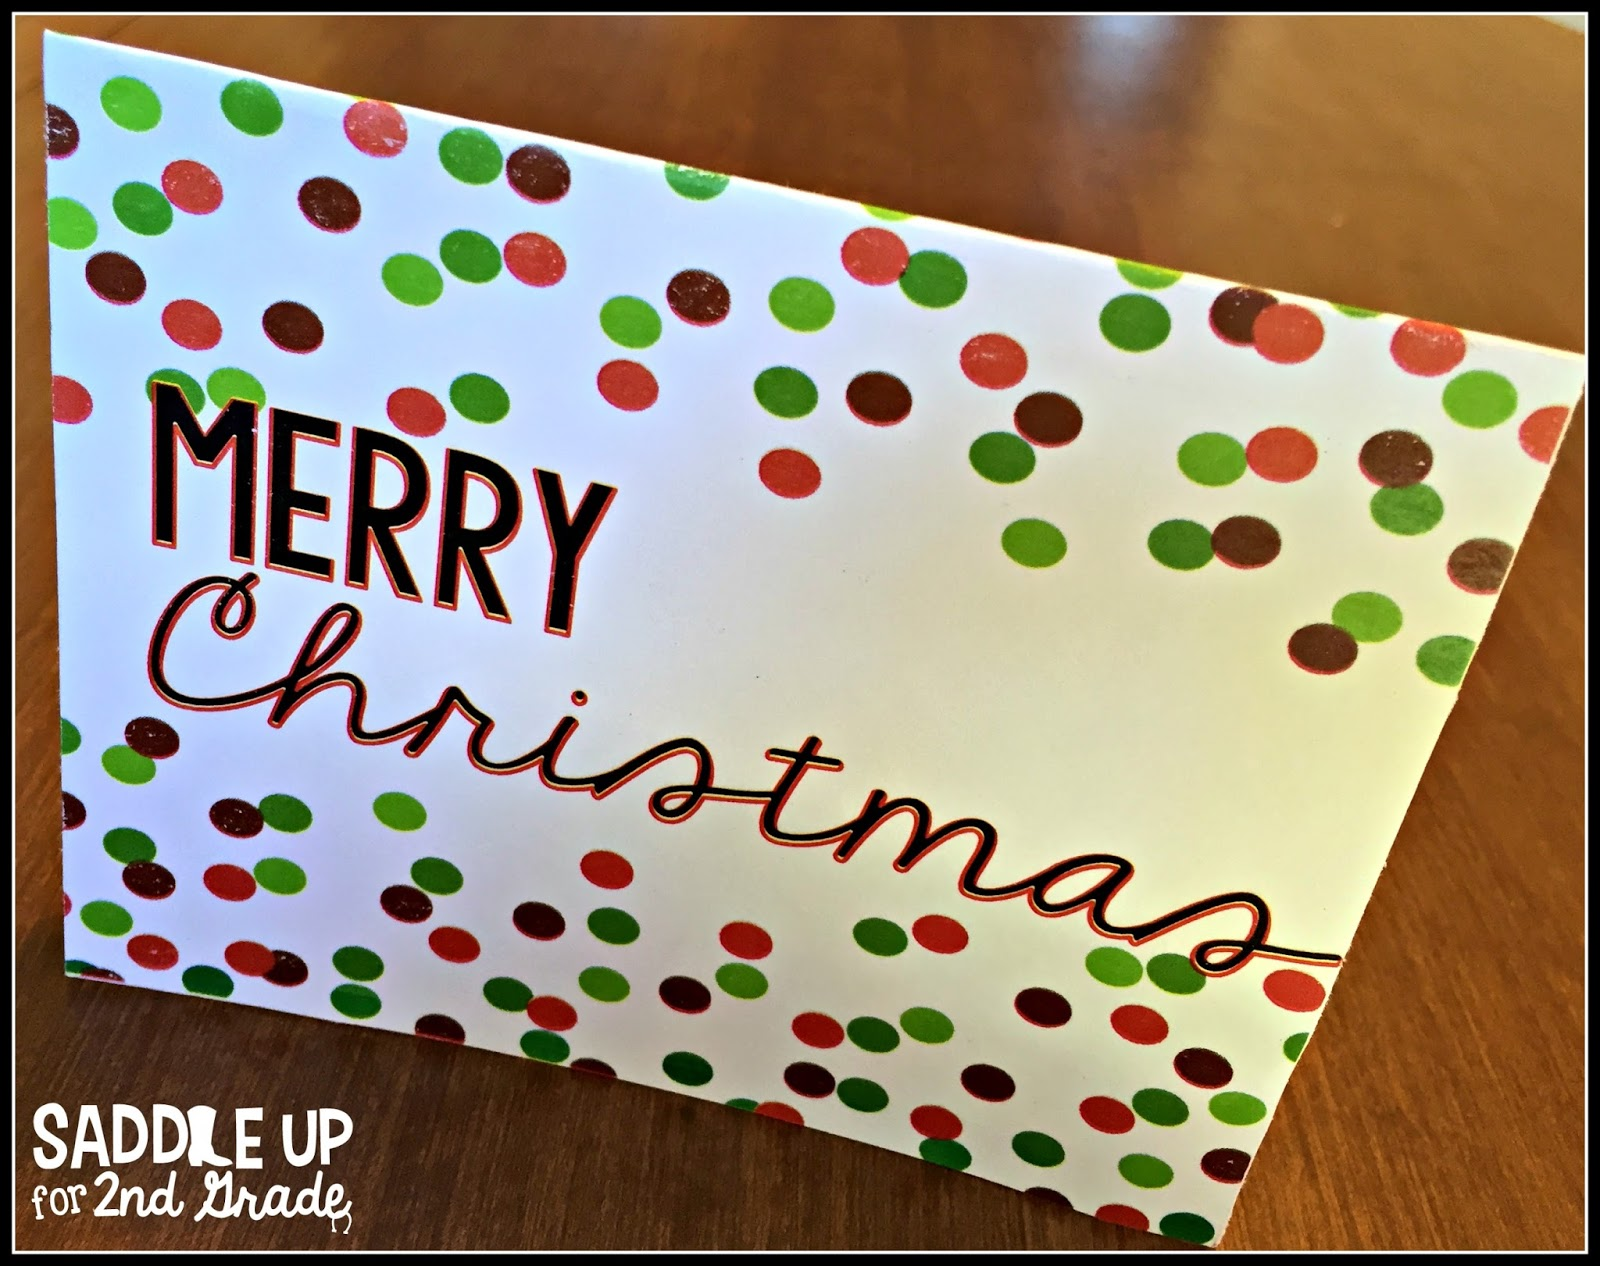 This FREE Christmas card printable is perfect for the holiday season. You can use it for thank you cards to send a quick note to friends and family. Grab it on my blog for FREE!